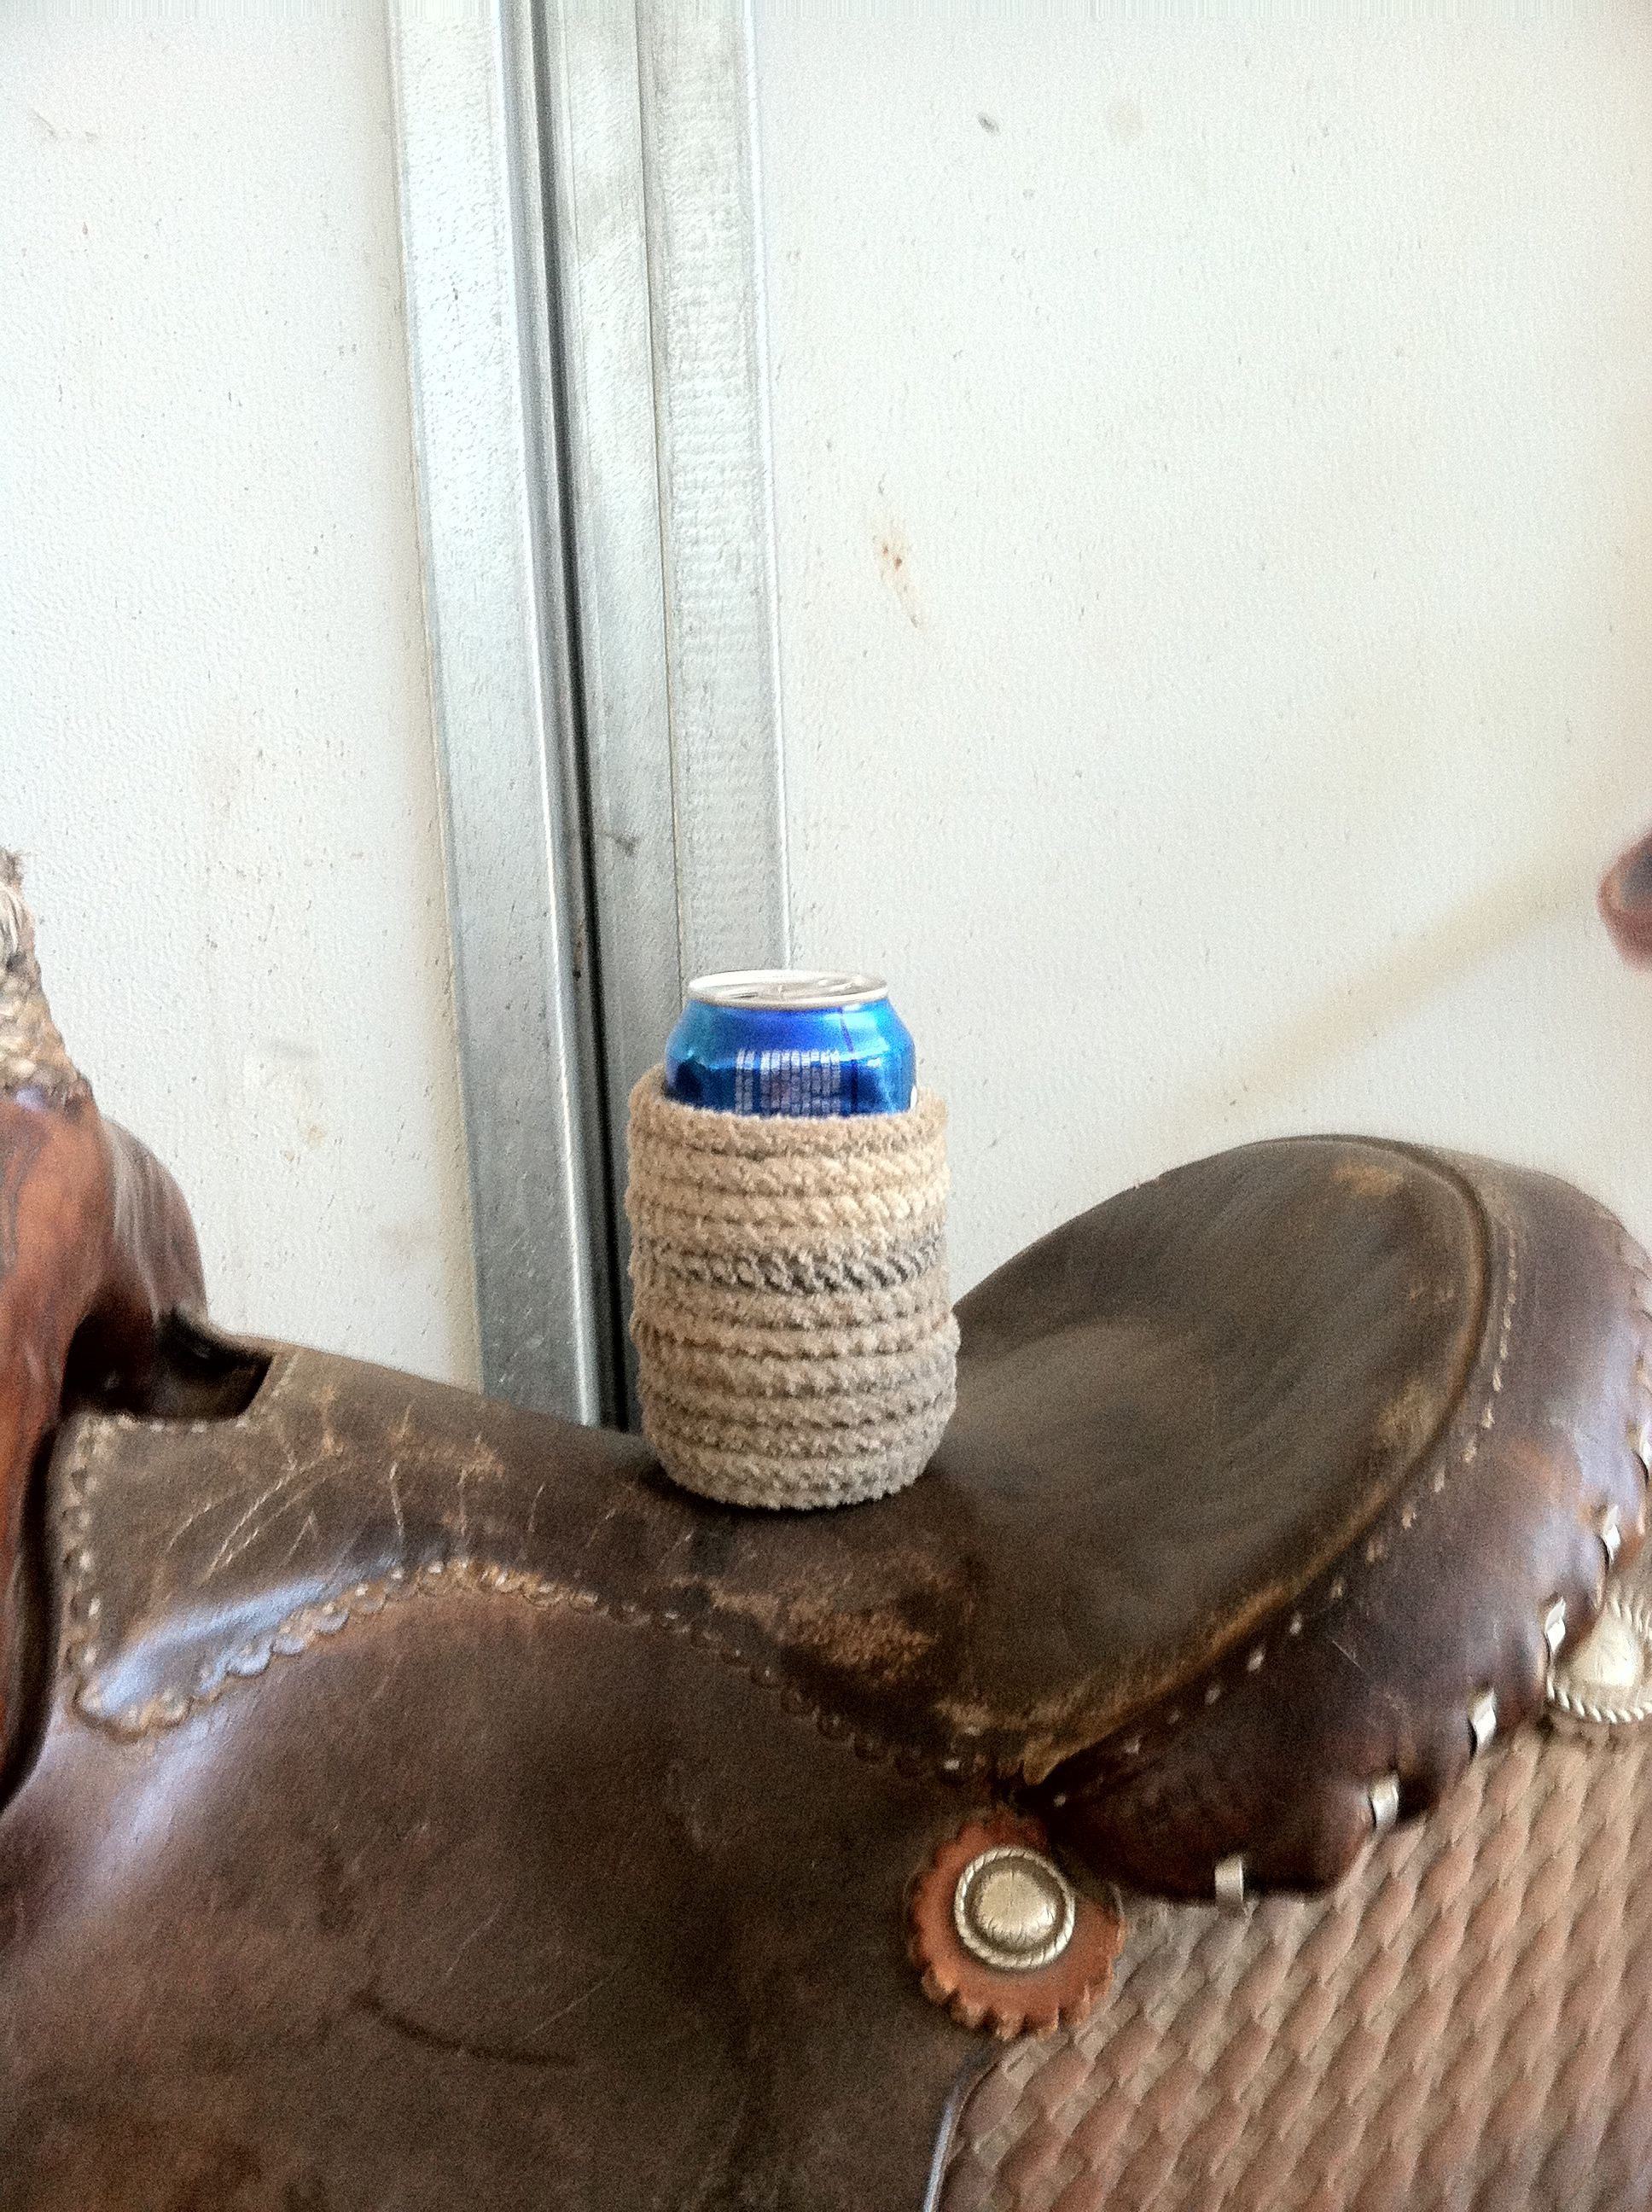 Add western flair to your beer can. $10